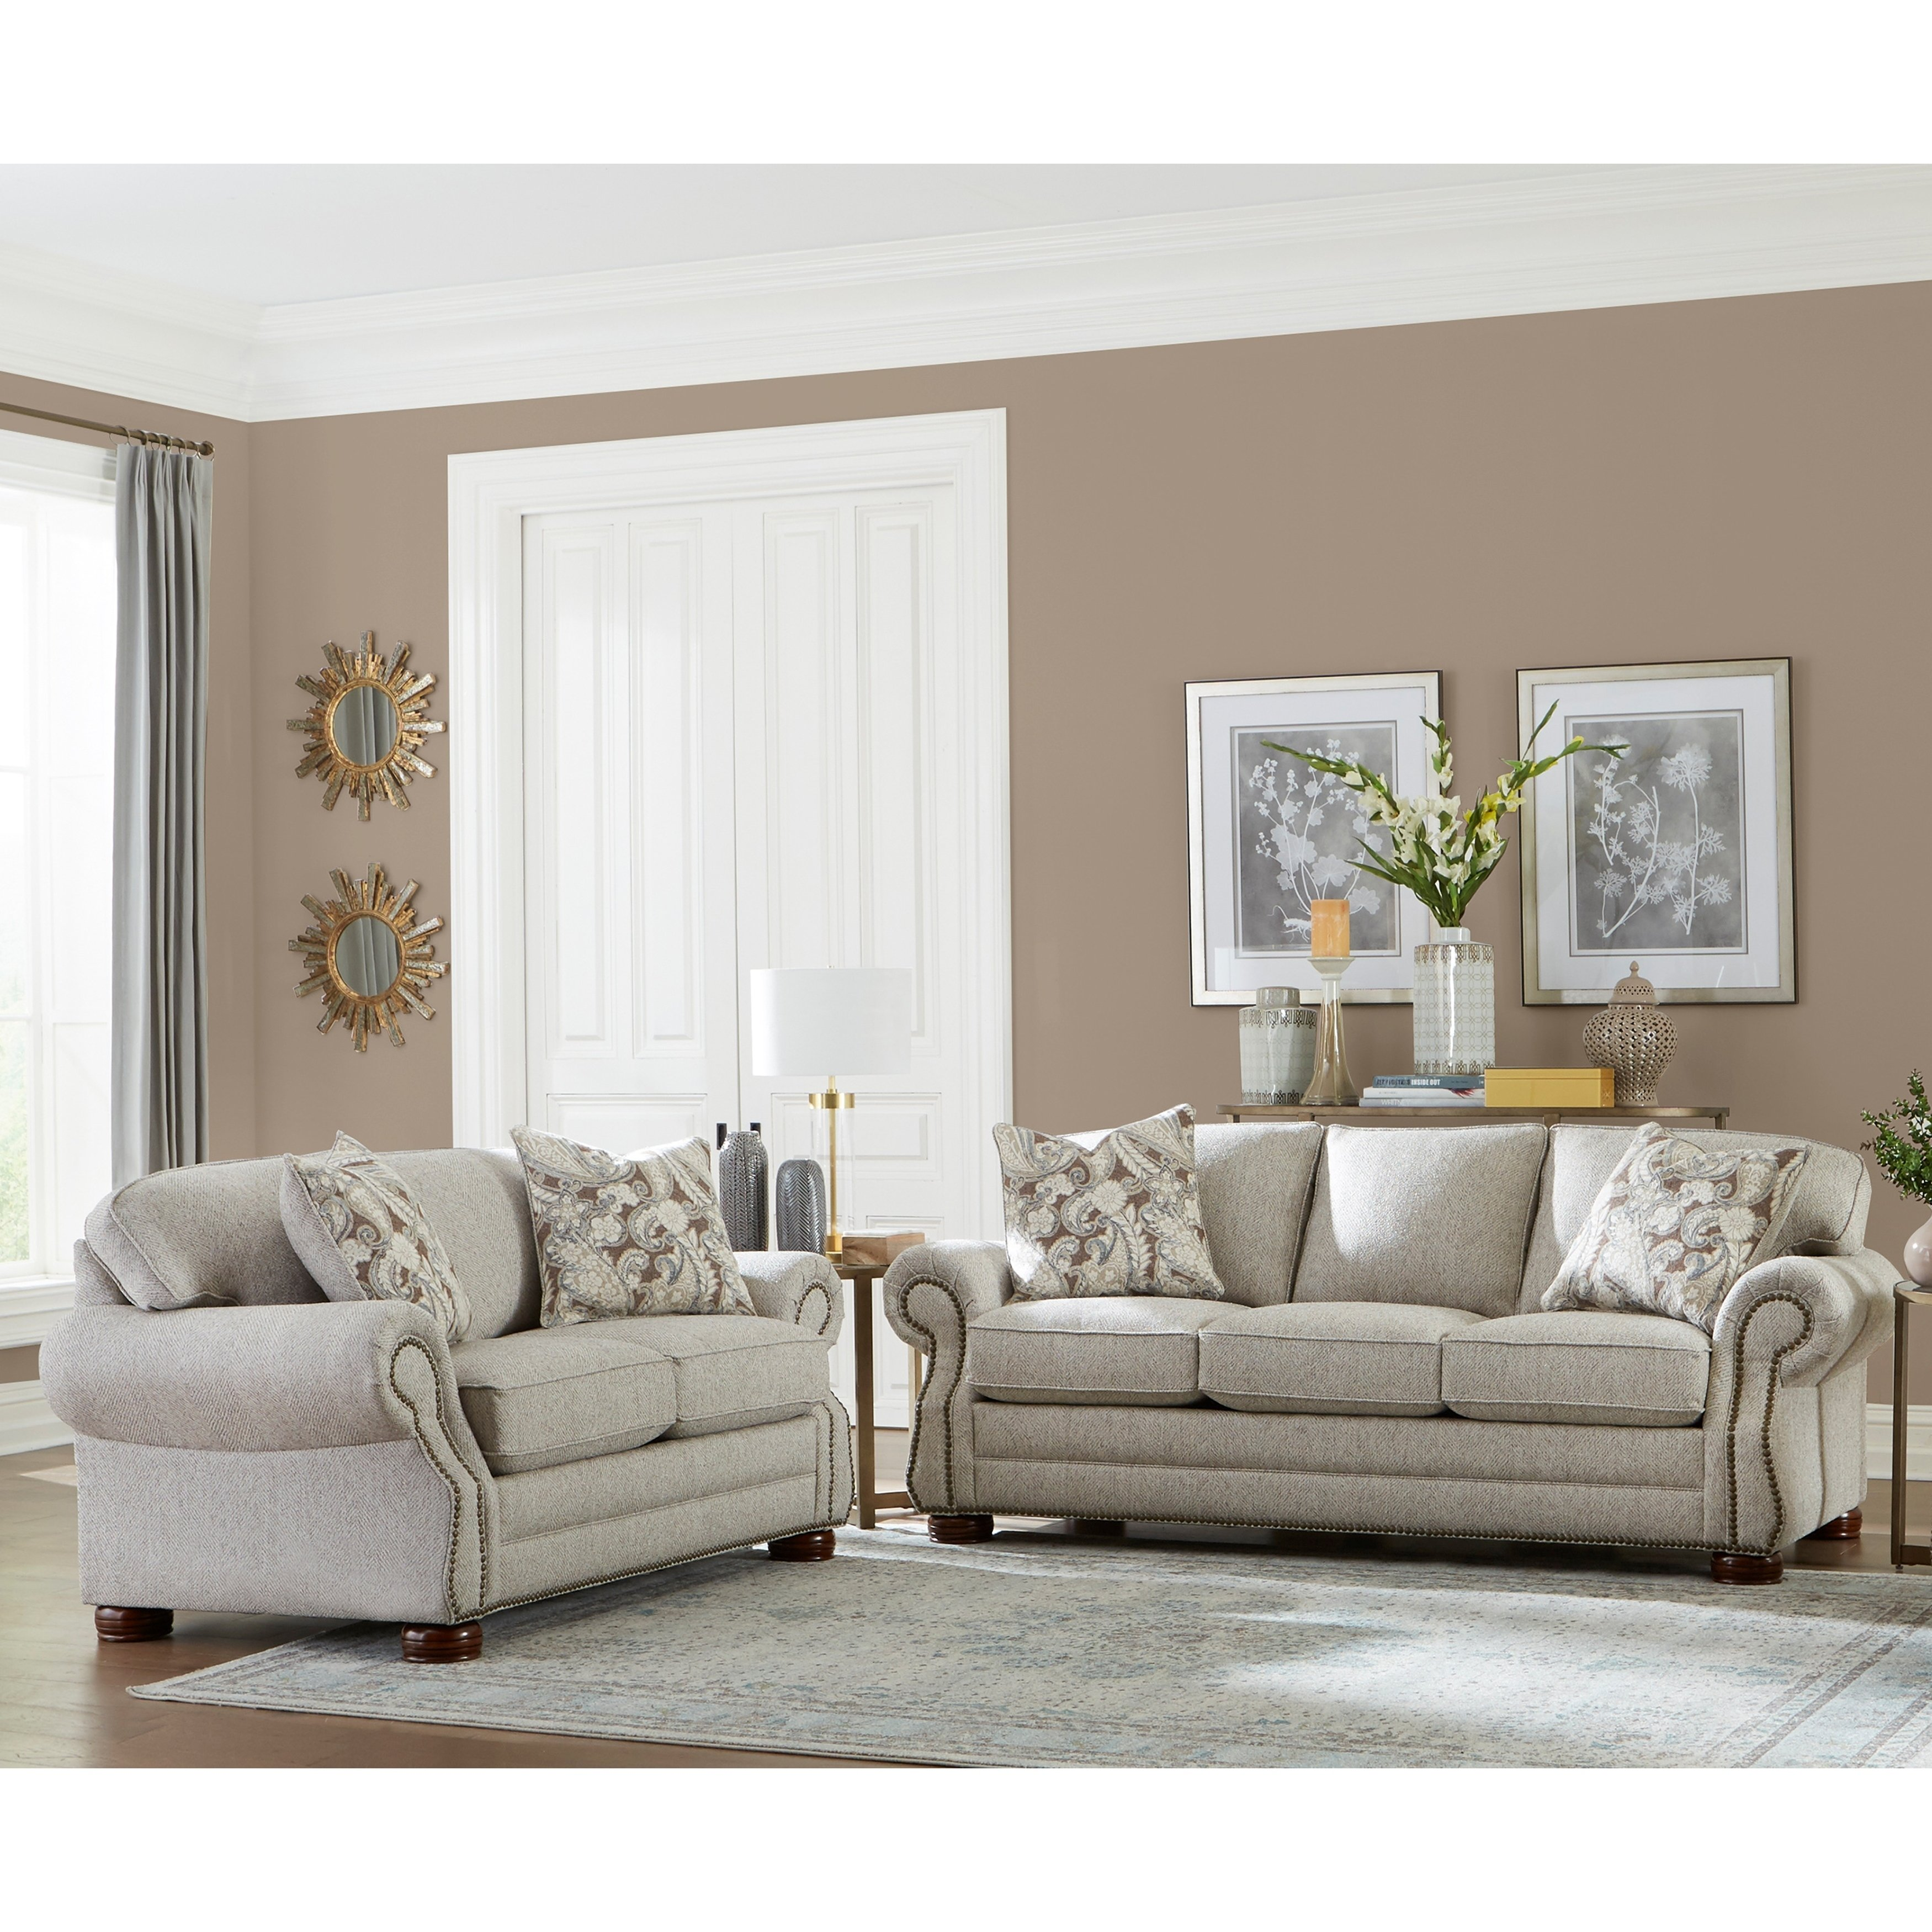 Pin By Juliana On Living Room Sets In 2020 Living Room Sets Living Room Furniture Room Set #velletri #pewter #living #room #set